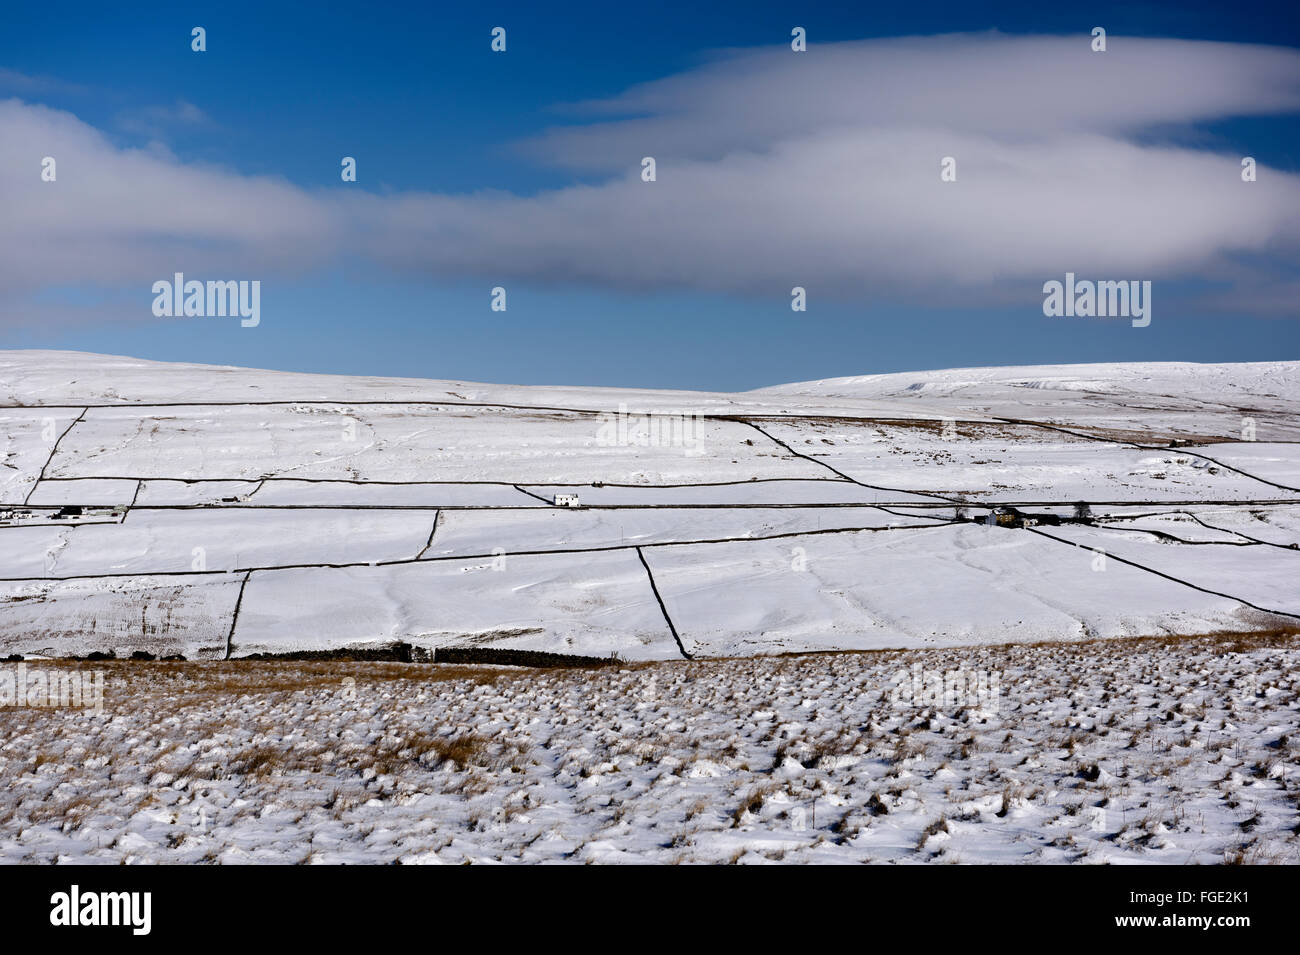 Upper Teesdale in Winter - Stock Image